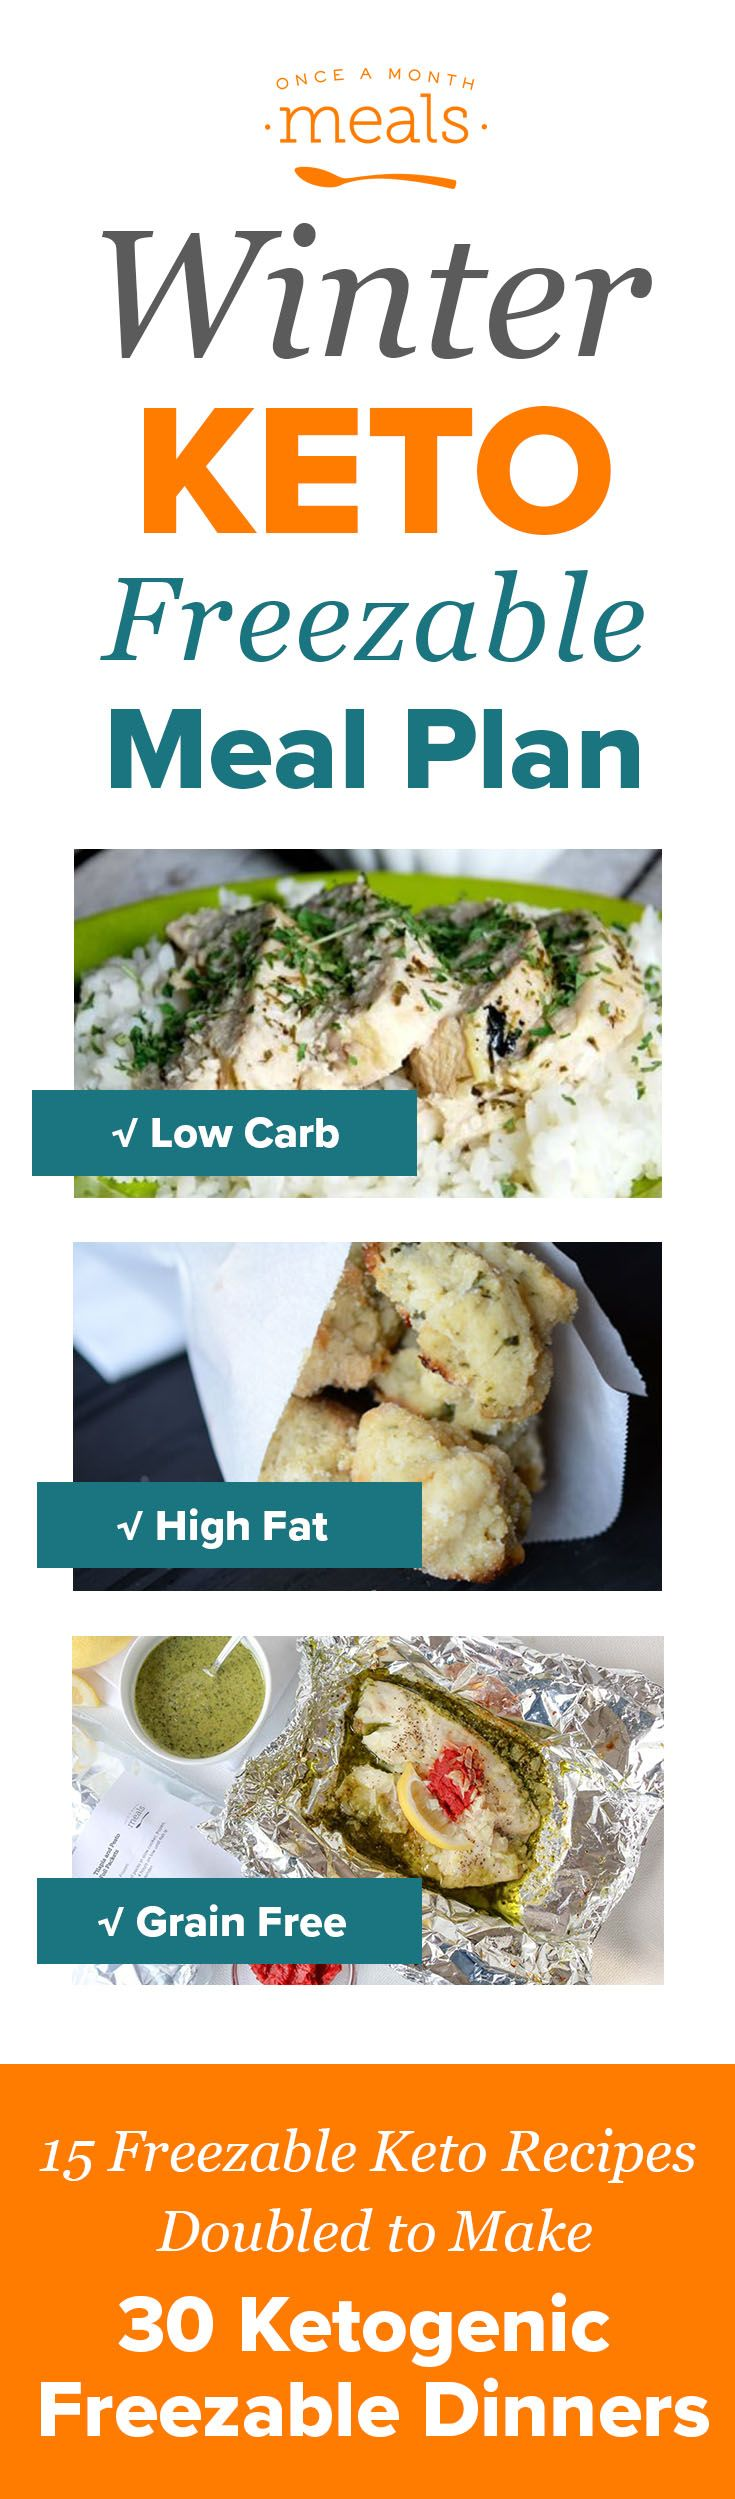 Start off the New Year with these tasty keto friendly freezer meals.  Save time with this Winter Keto Menu and savor the Bacon Chorizo Meatloaf and Spinach Cilantro meatballs.